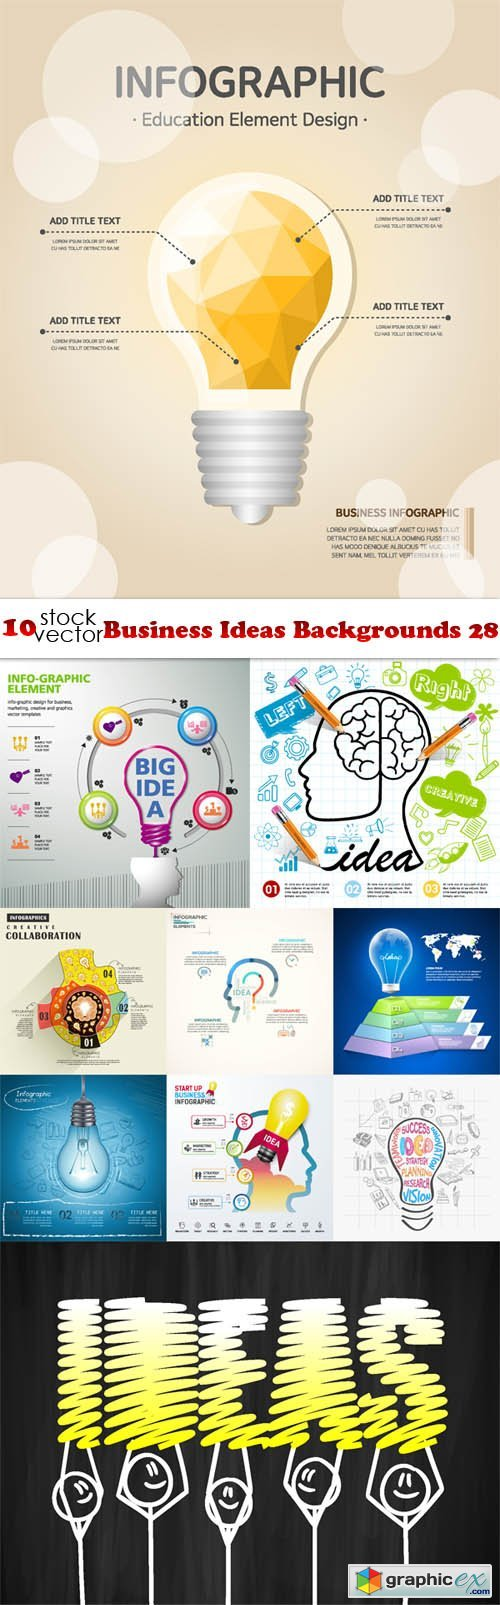 Business Ideas Backgrounds 28